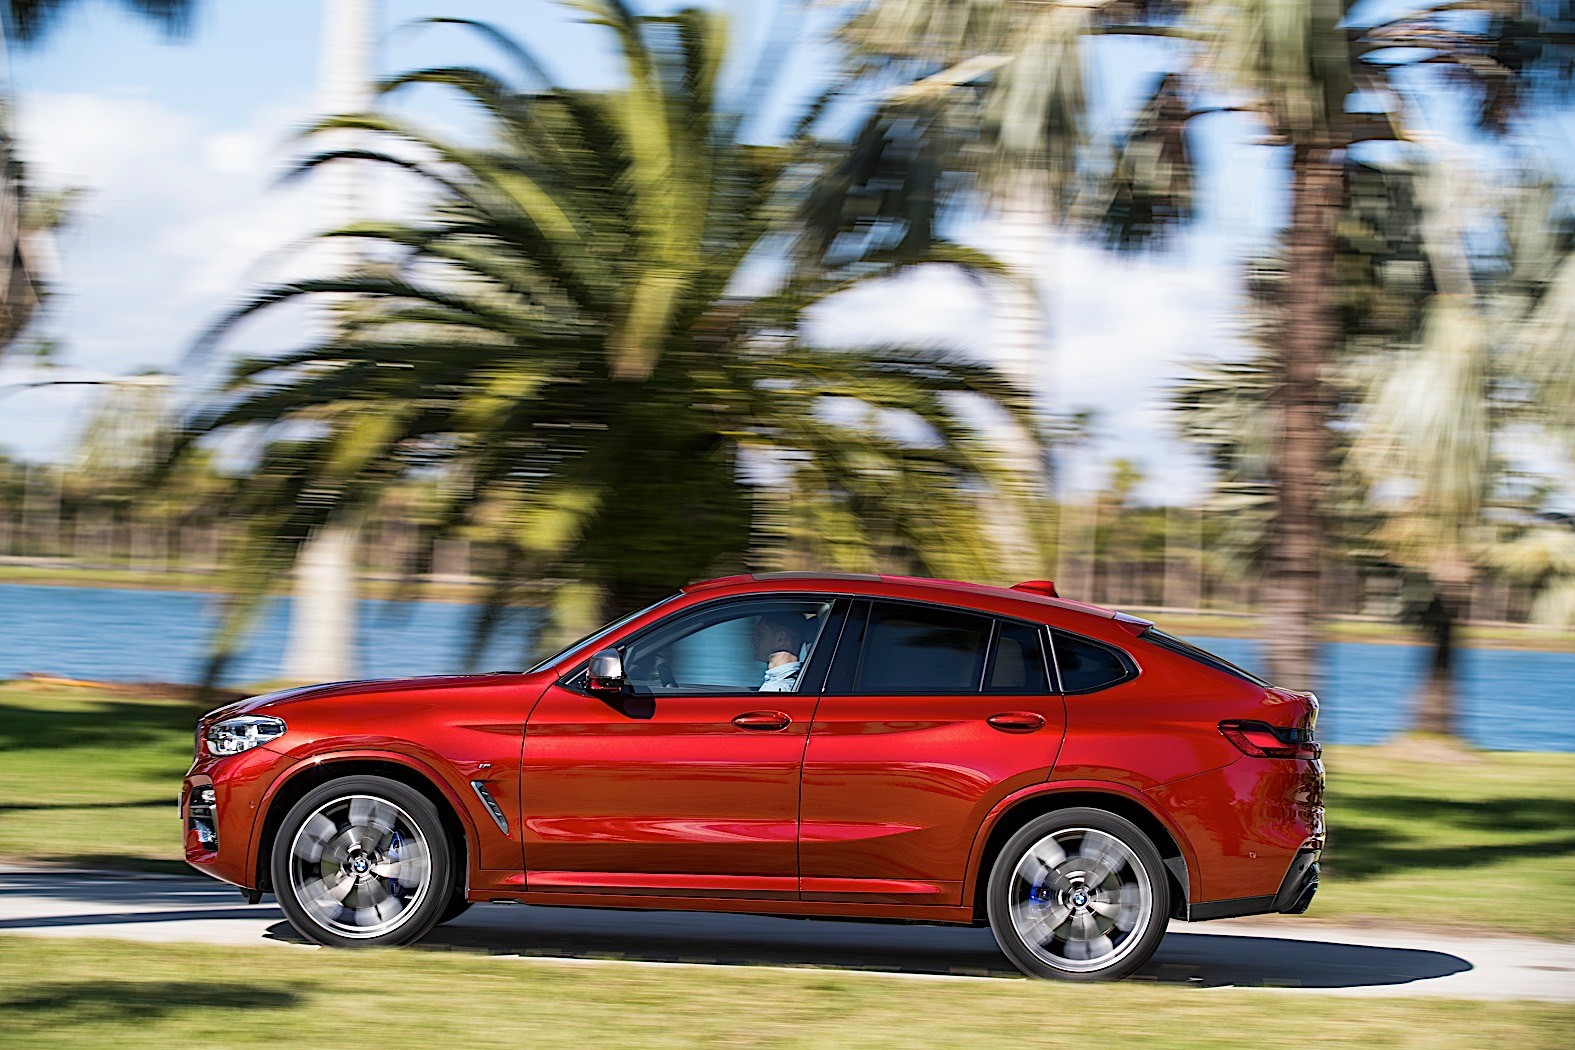 2019 BMW X4 (G02) Rendered Based on All-New X3 - autoevolution